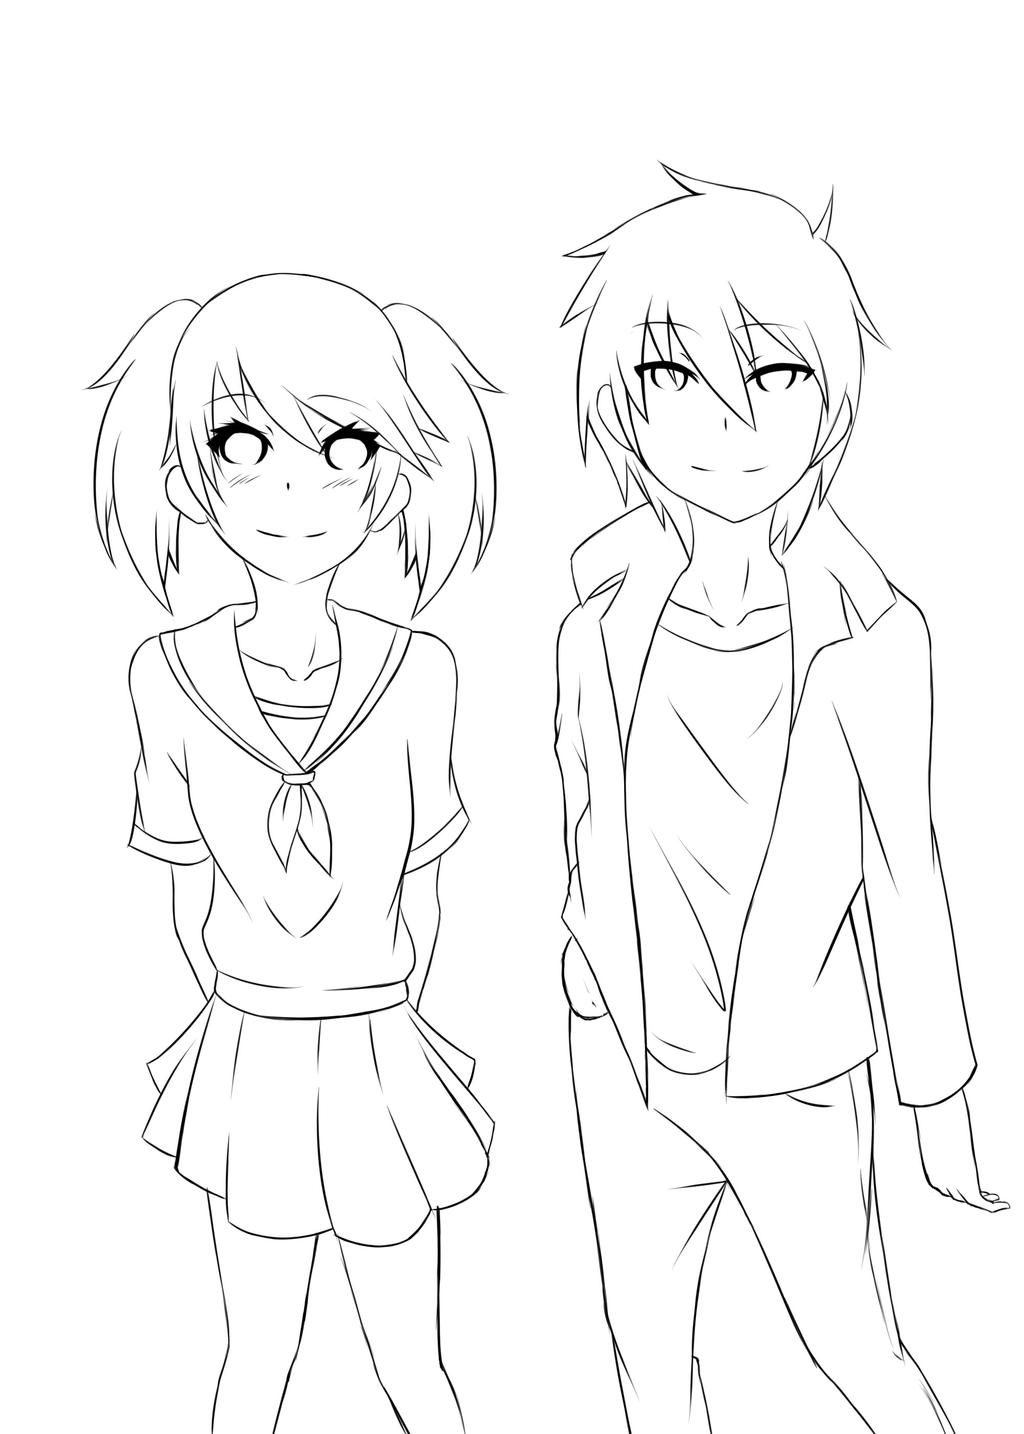 Lineart Anime Boy : Lineart girl and boy by shizuka chan on deviantart